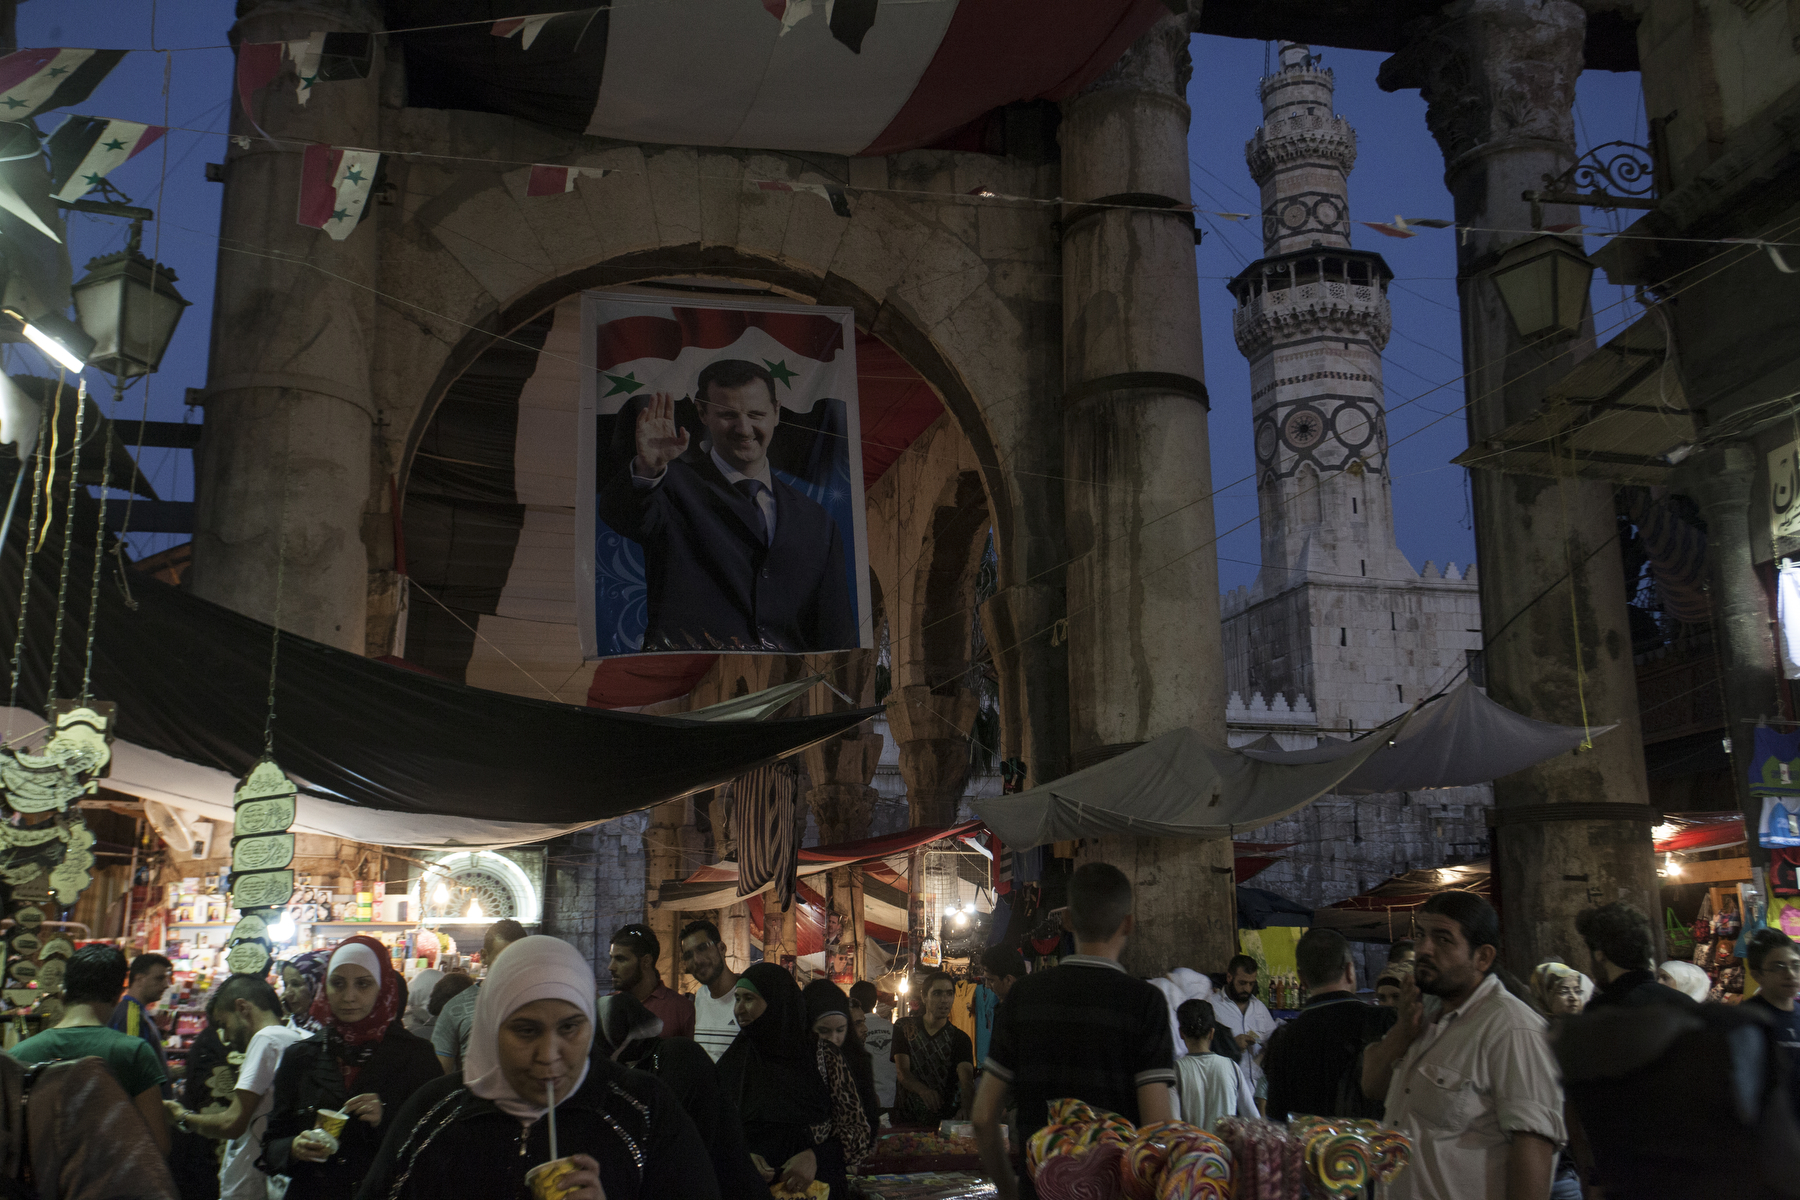 Damascus, 2015, People walk by the market street leading to the Umayyad Mosque, also known as the Great Mosque of Damascus in the Old City.